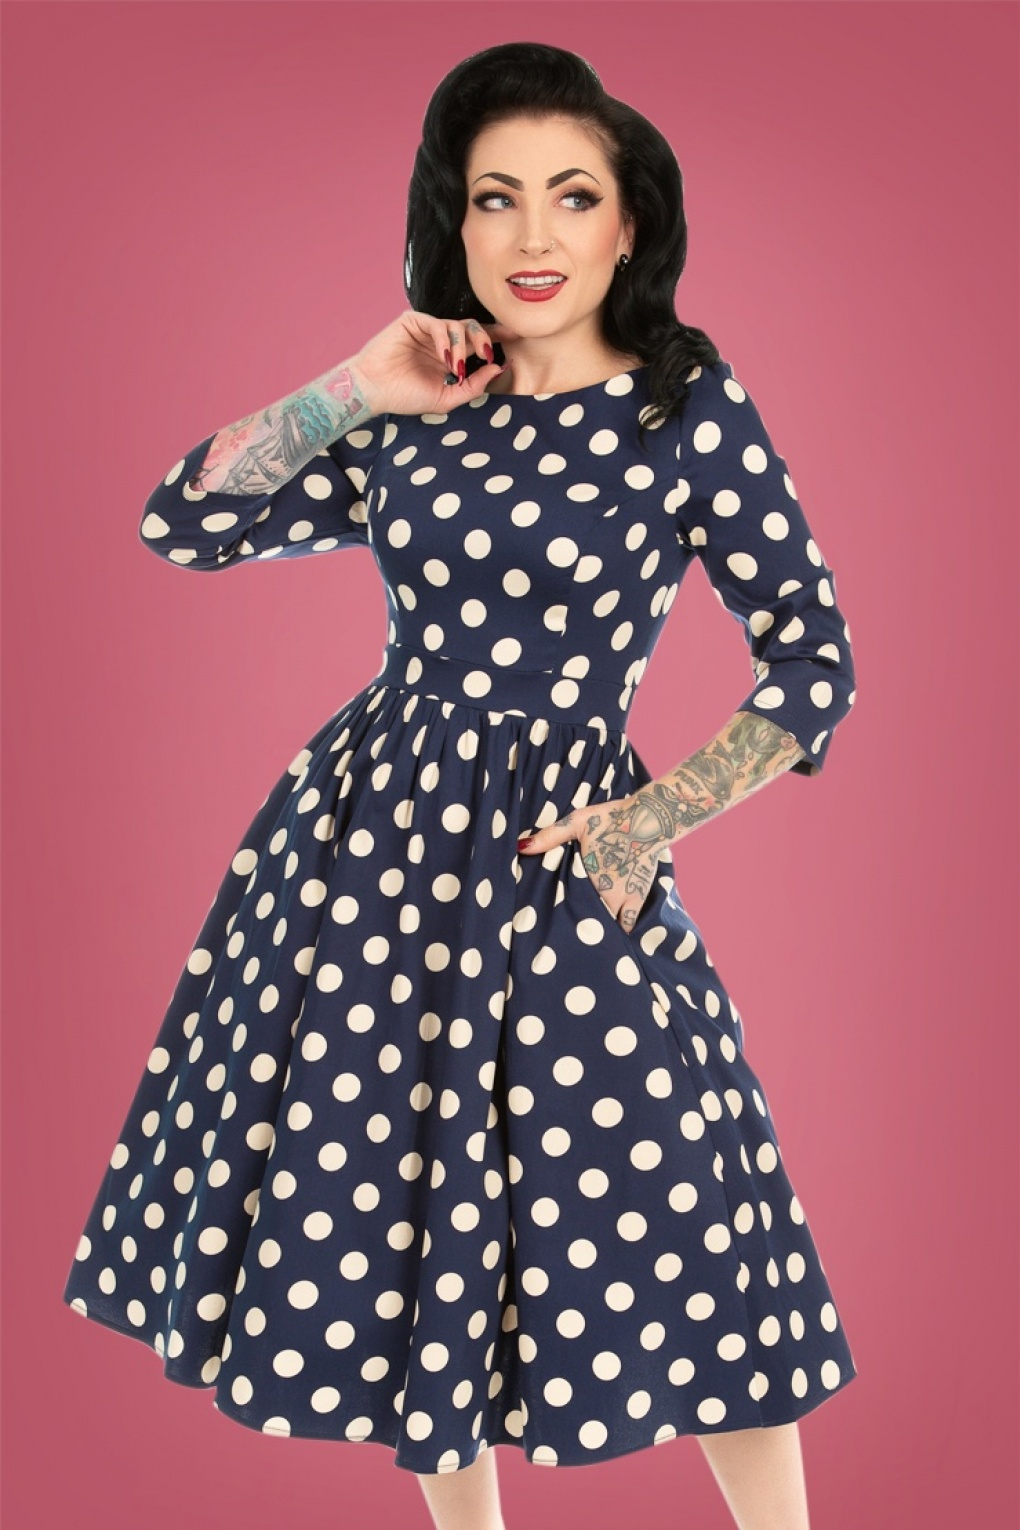 Vintage Polka Dot Dresses – 50s Spotty and Ditsy Prints 50s Milana Polkadot Swing Dress in Navy and Cream £48.45 AT vintagedancer.com